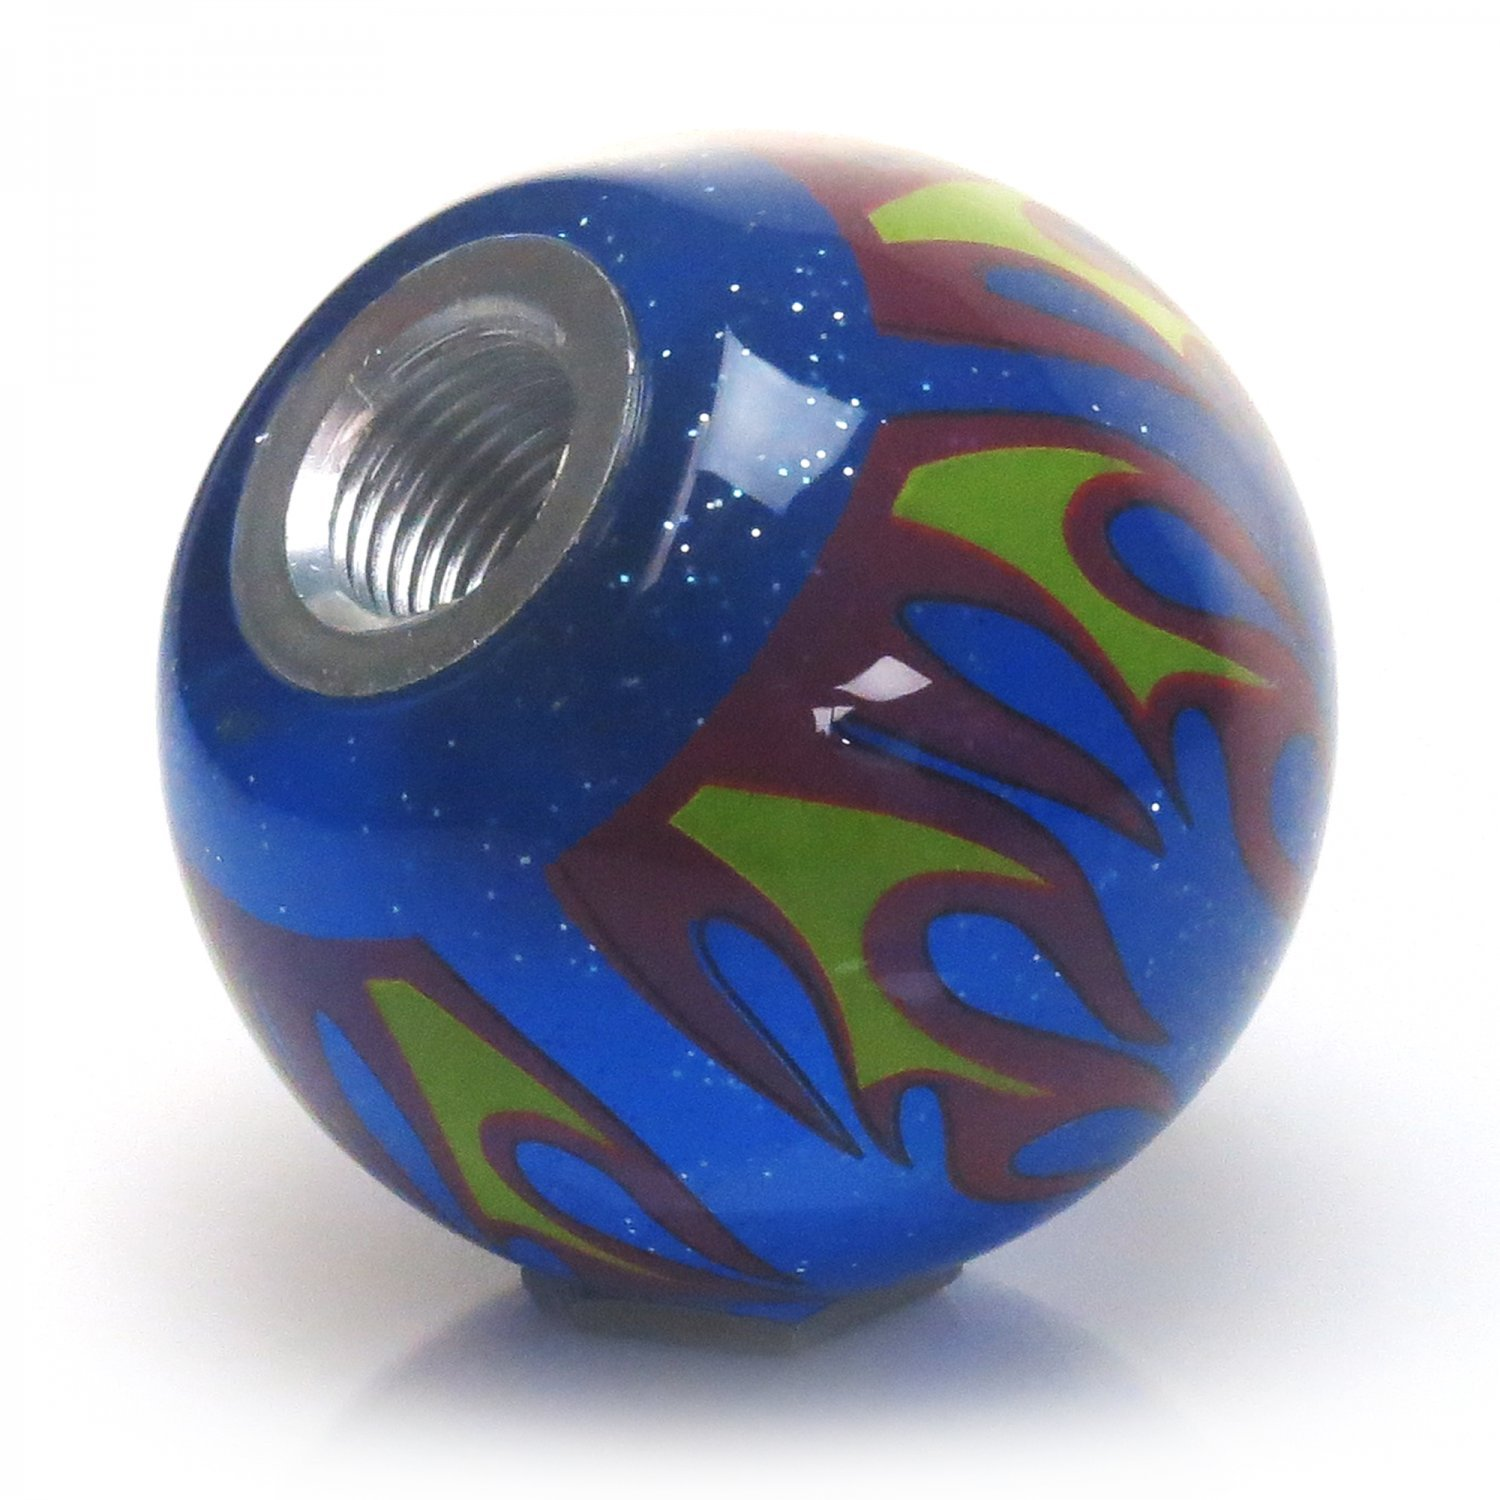 American Shifter 244518 Blue Flame Metal Flake Shift Knob with M16 x 1.5 Insert Blue Ball #2